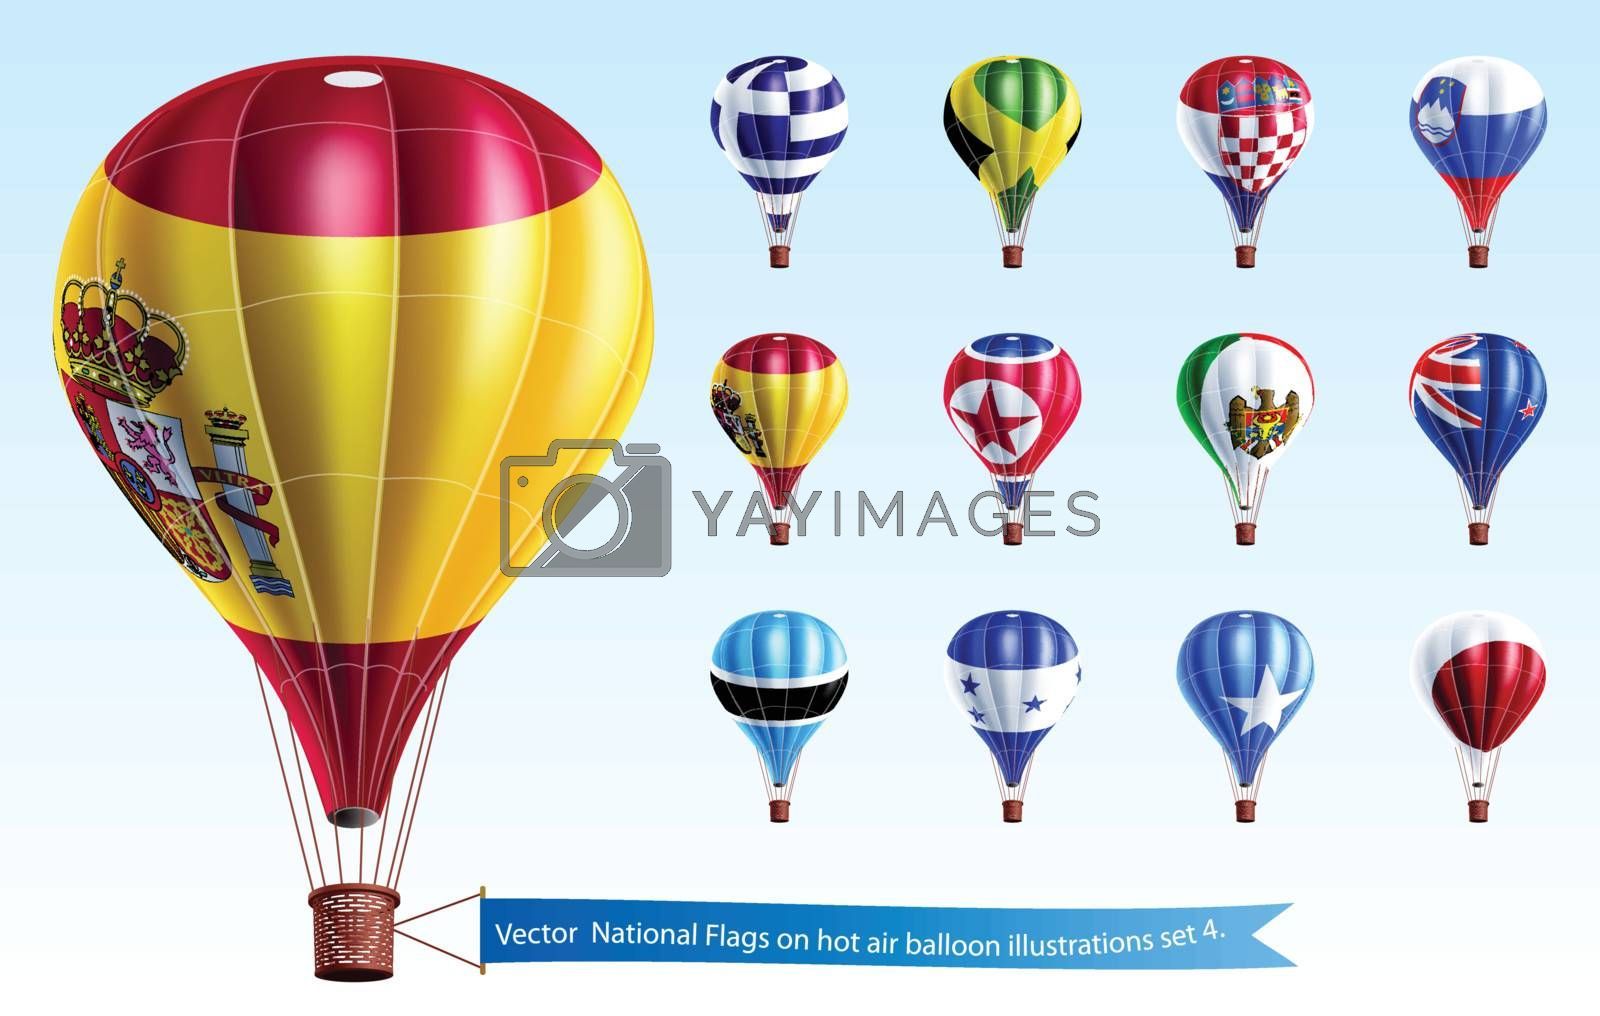 Vector  National Flags on hot air balloon illustrations set 4